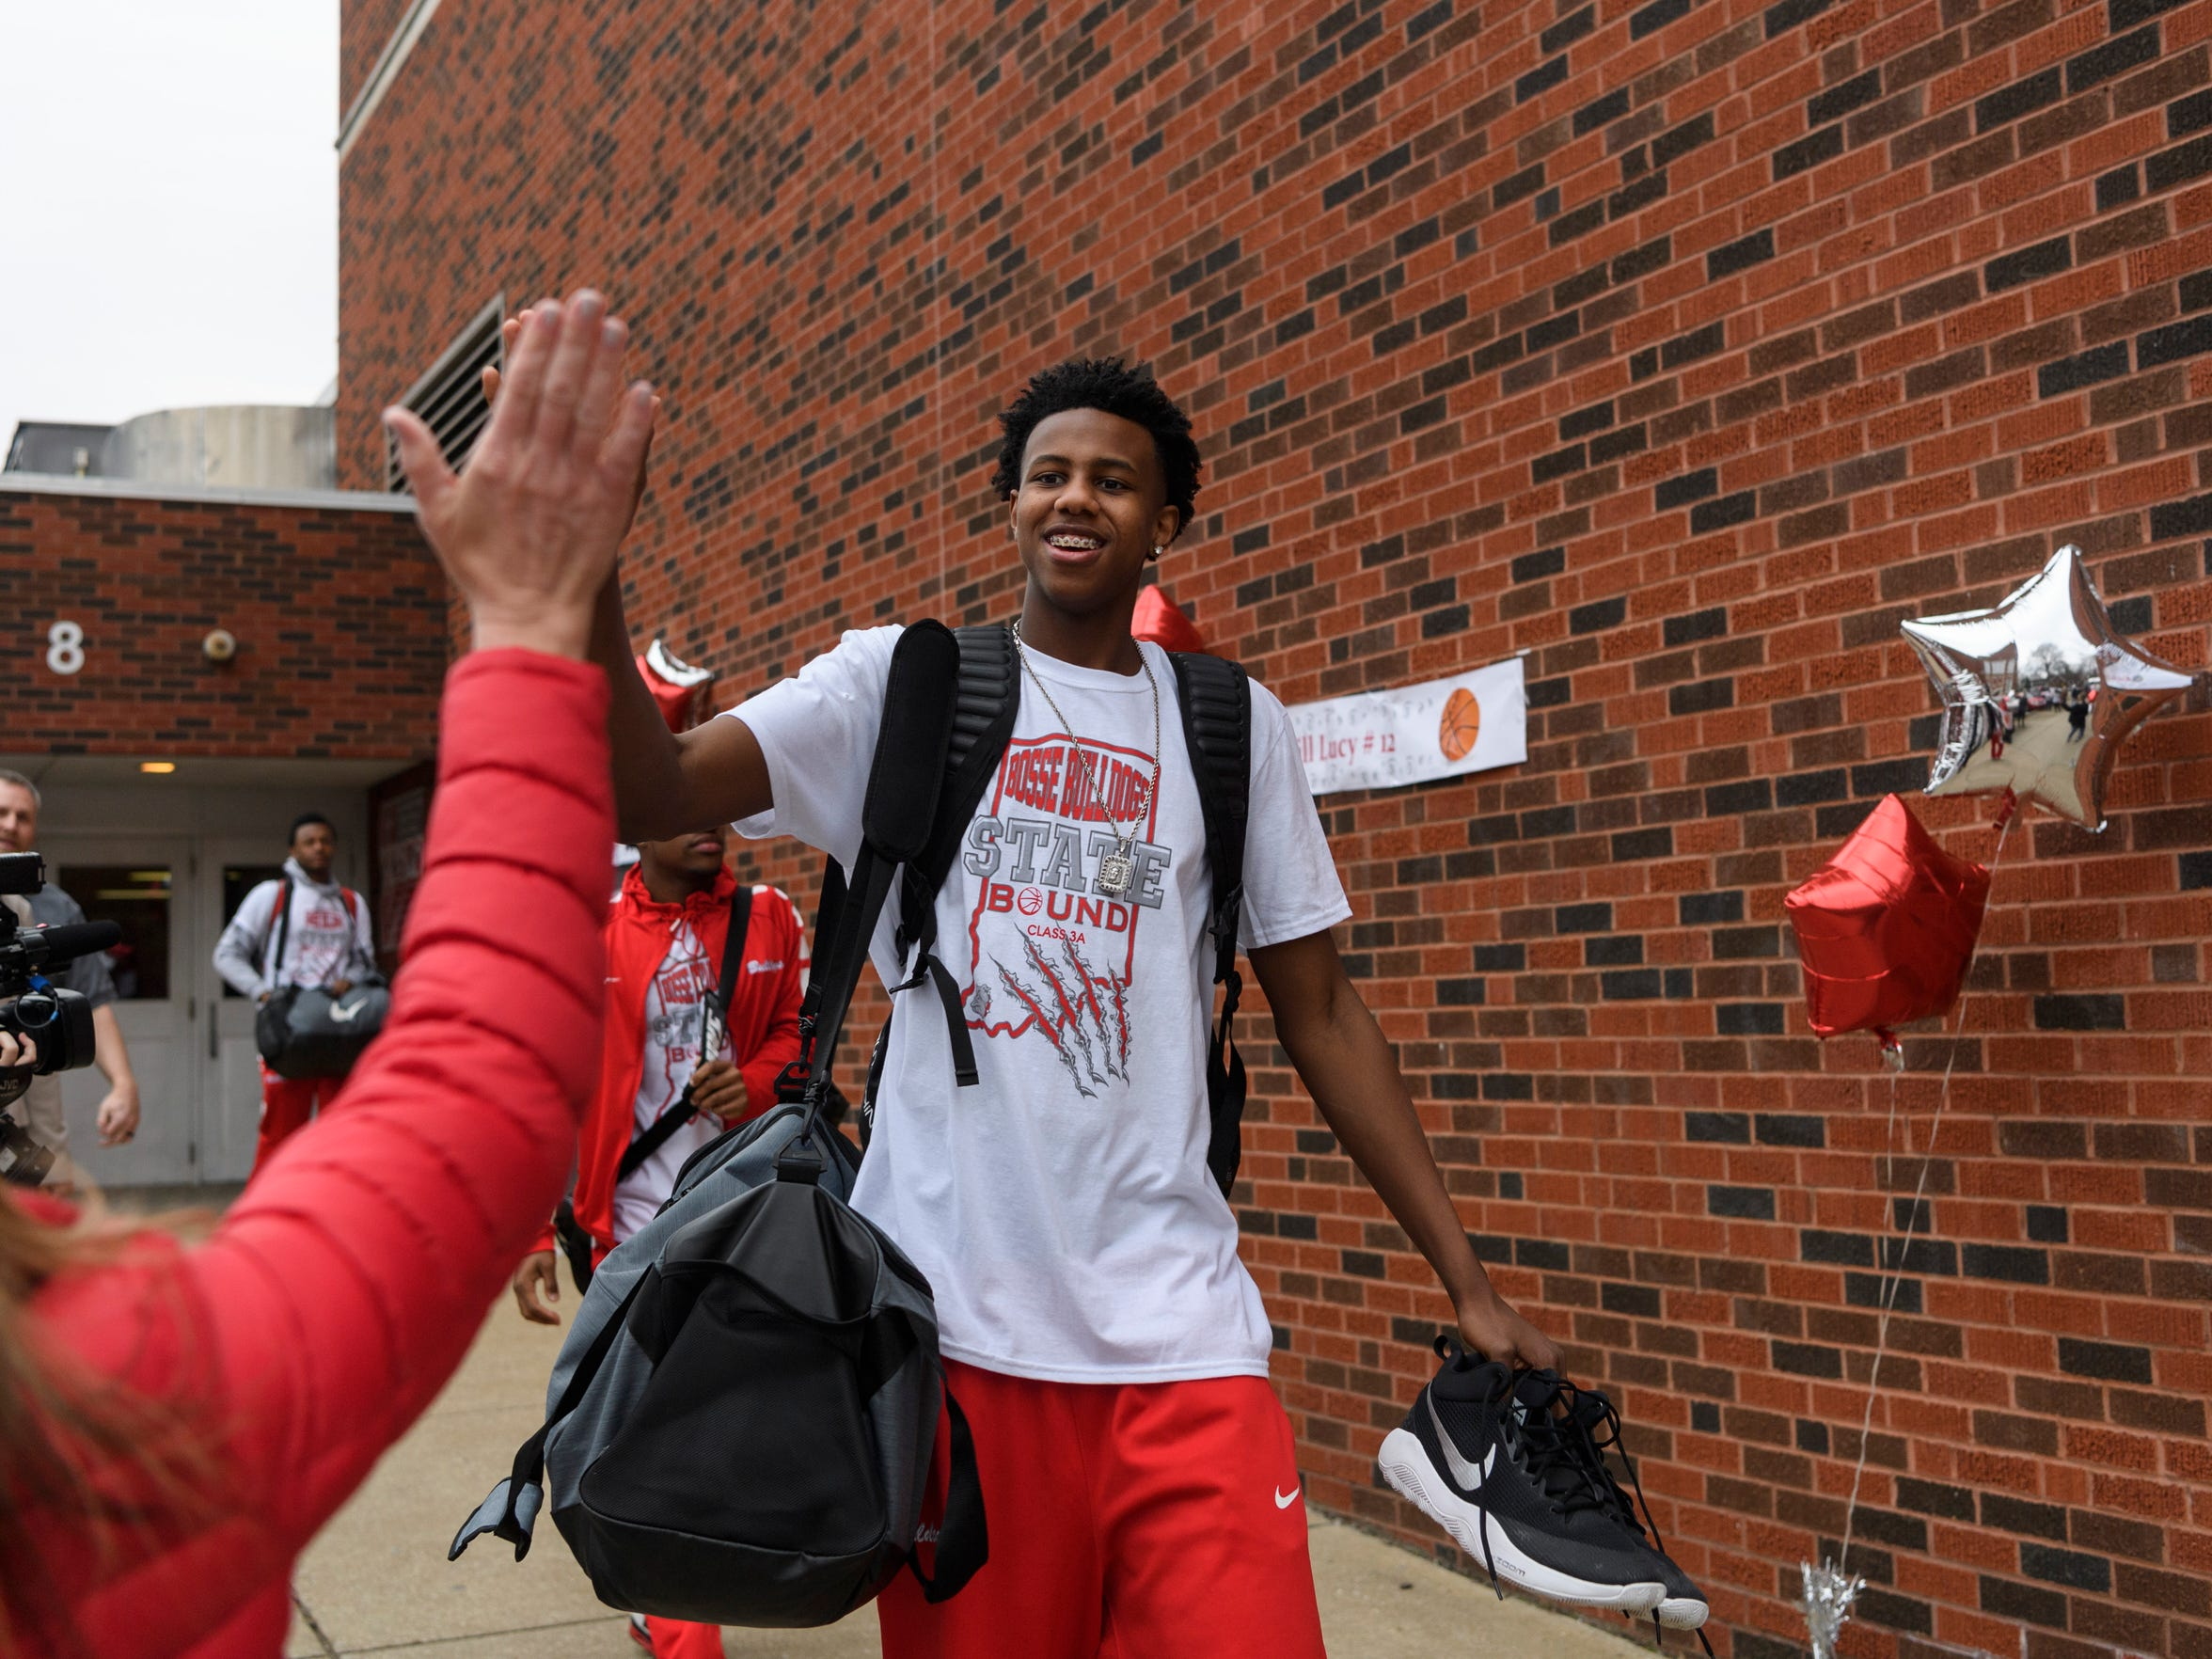 Kiyron Powell (52) receives a high-five as he walks to the bus during a state championship send-off for the basketball team at Bosse High School in Evansville, Ind., Friday, March 23, 2018. The team will compete in tomorrow's Class 3A State Championship game at Bankers Life Fieldhouse in Indianapolis.